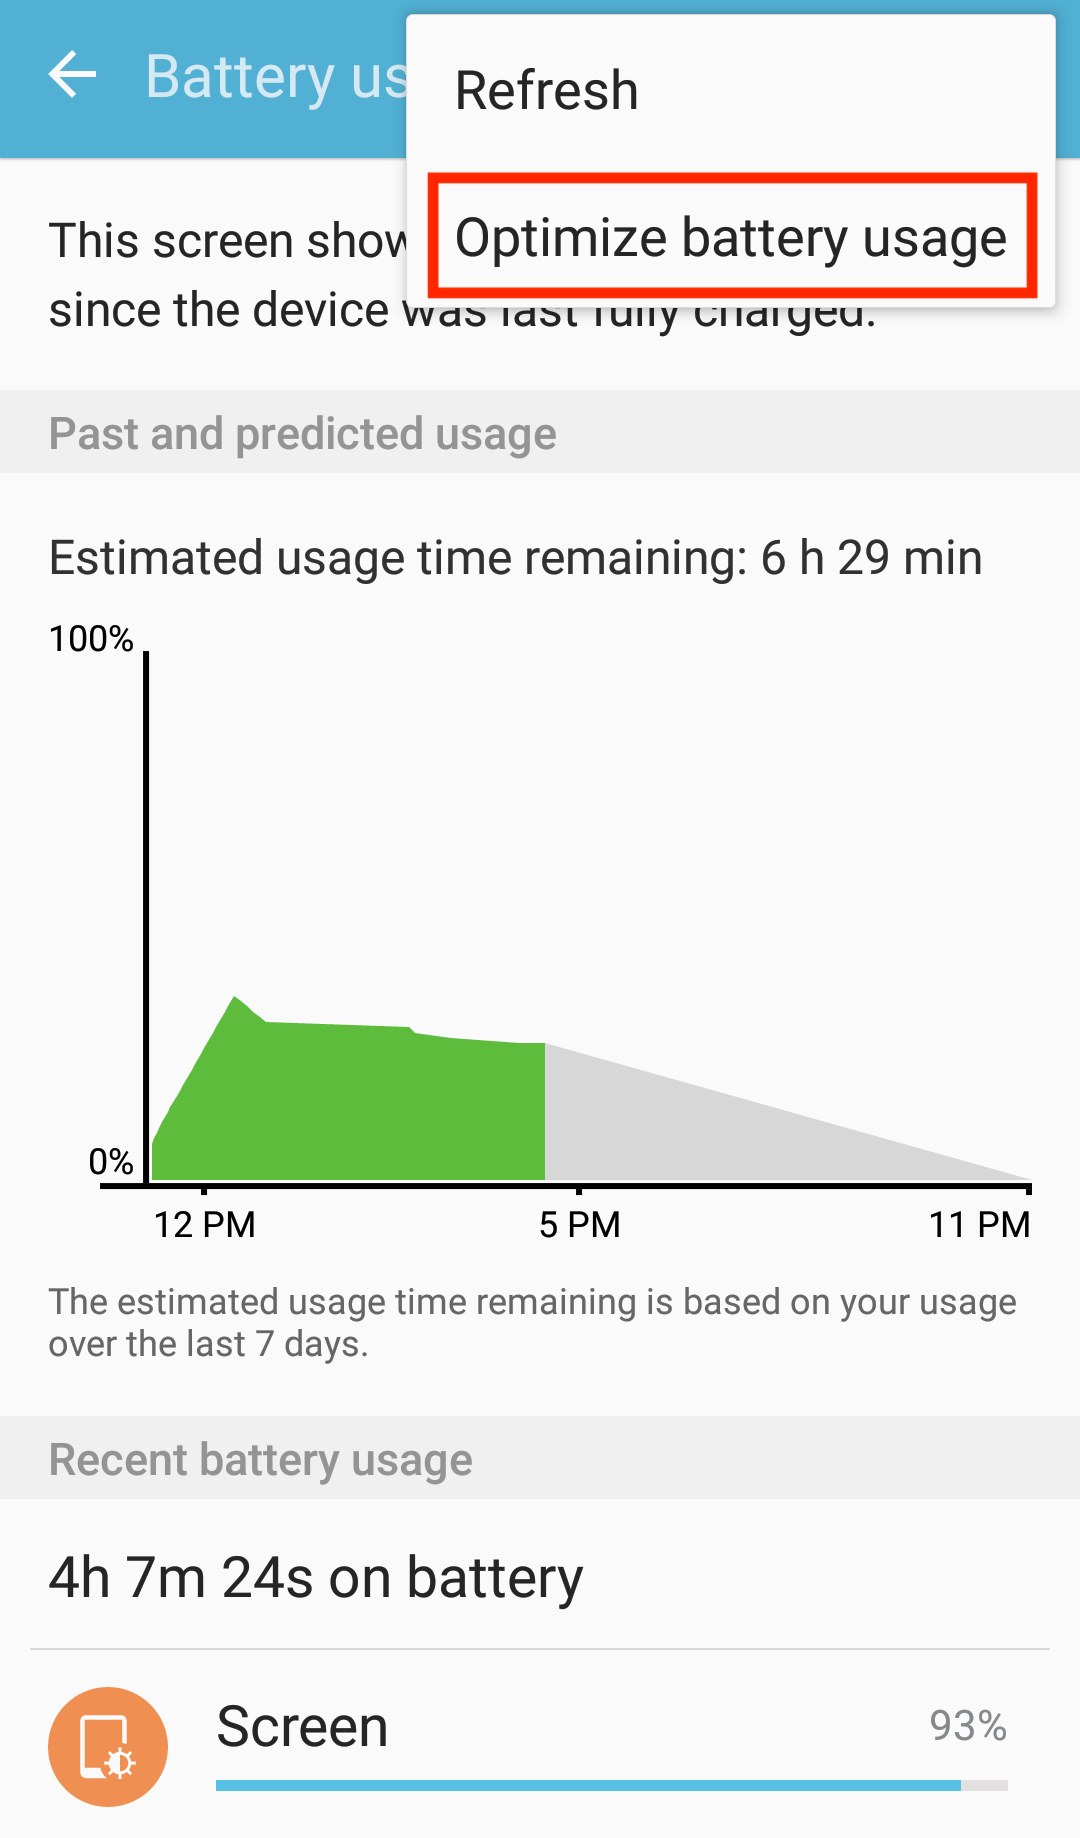 4-Optimize_battery_usage.png